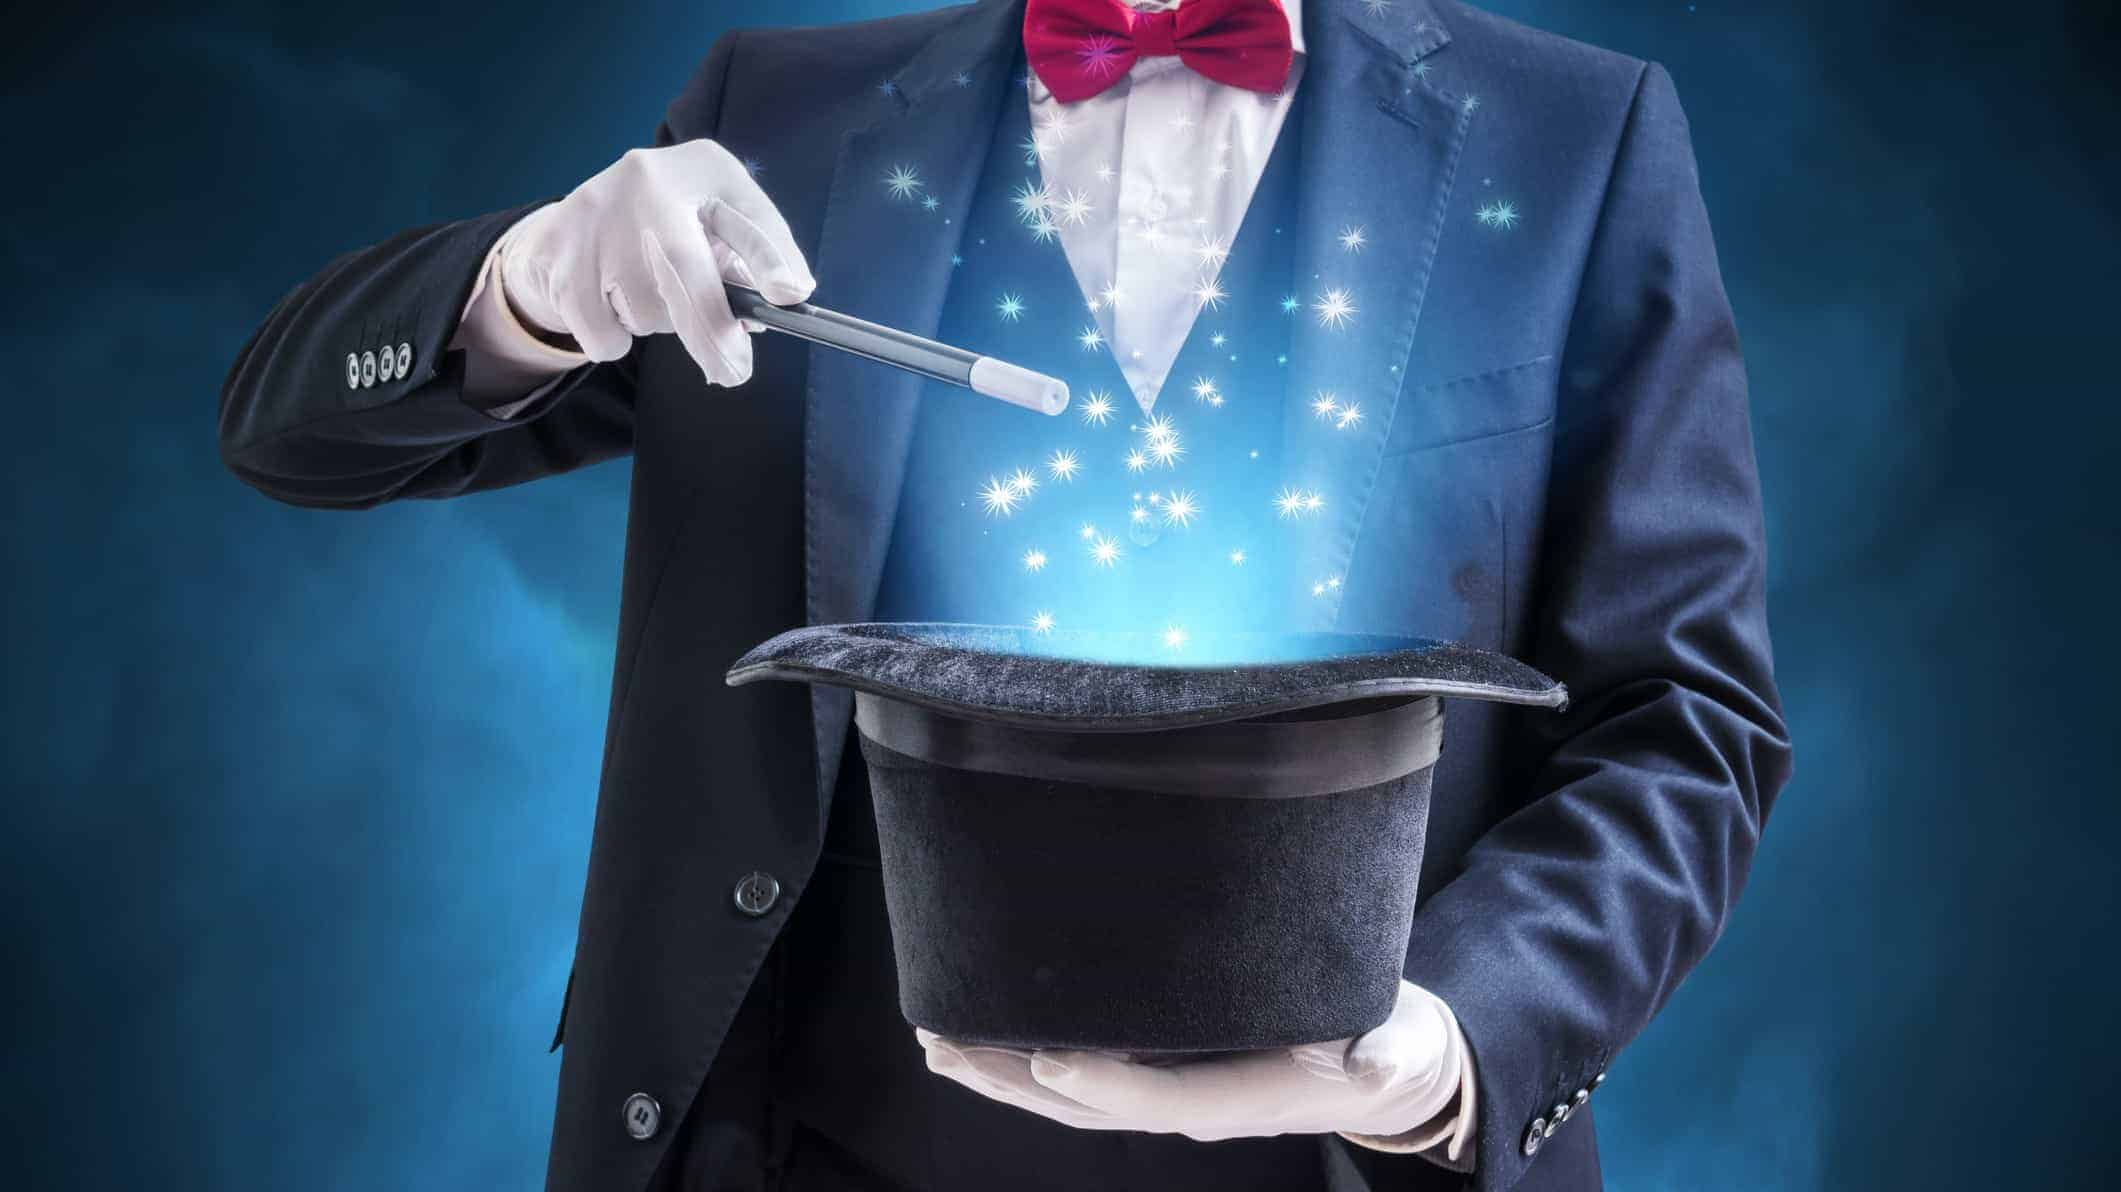 Magician with magic hat, investment magic, invest like Warren Buffett